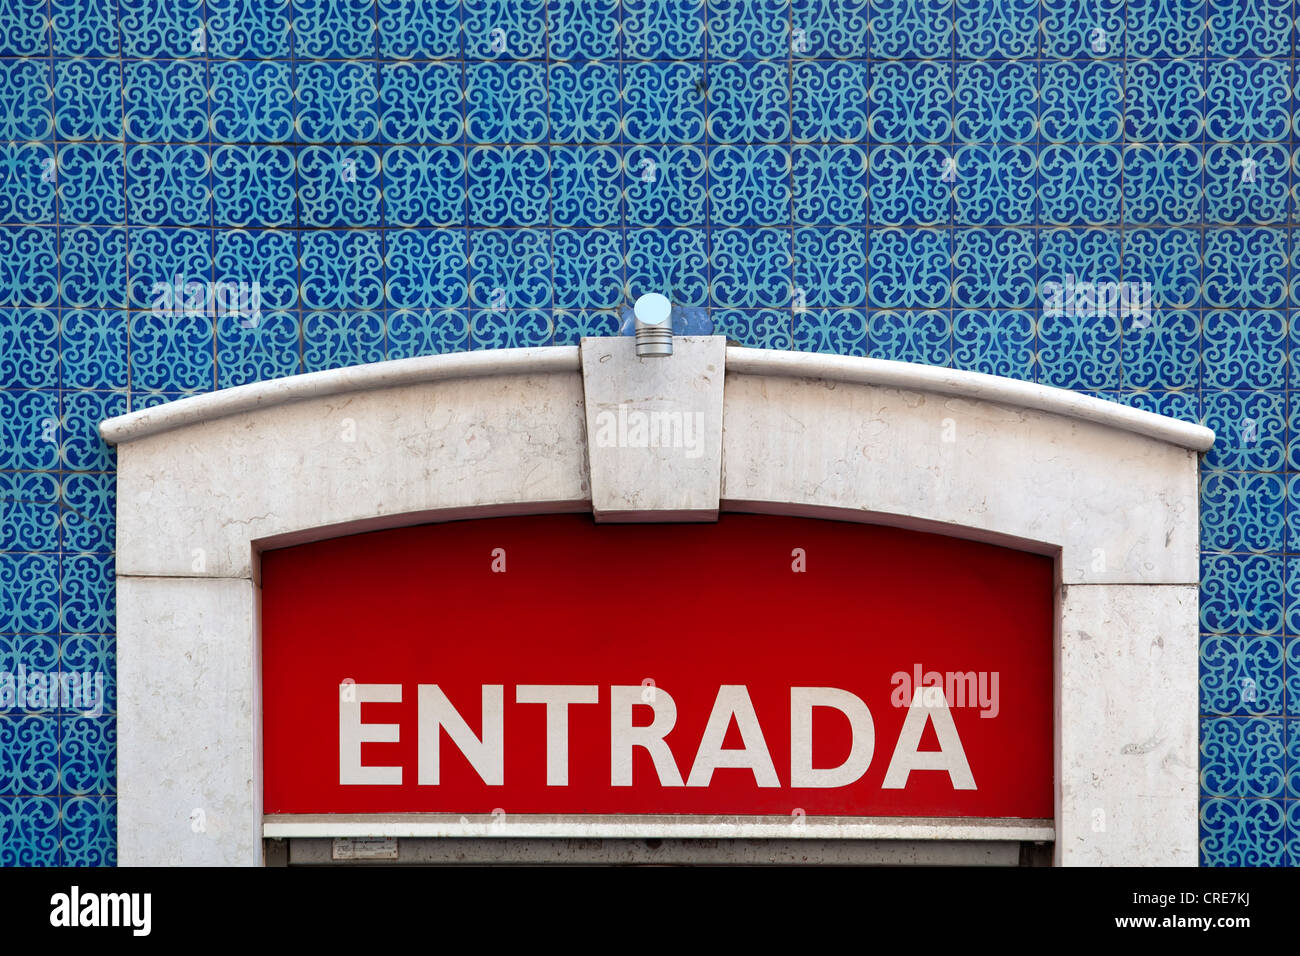 Entrada, entrance sign on a tiled wall in the historic district of Baixa in Lisbon, Portugal, Europe - Stock Image